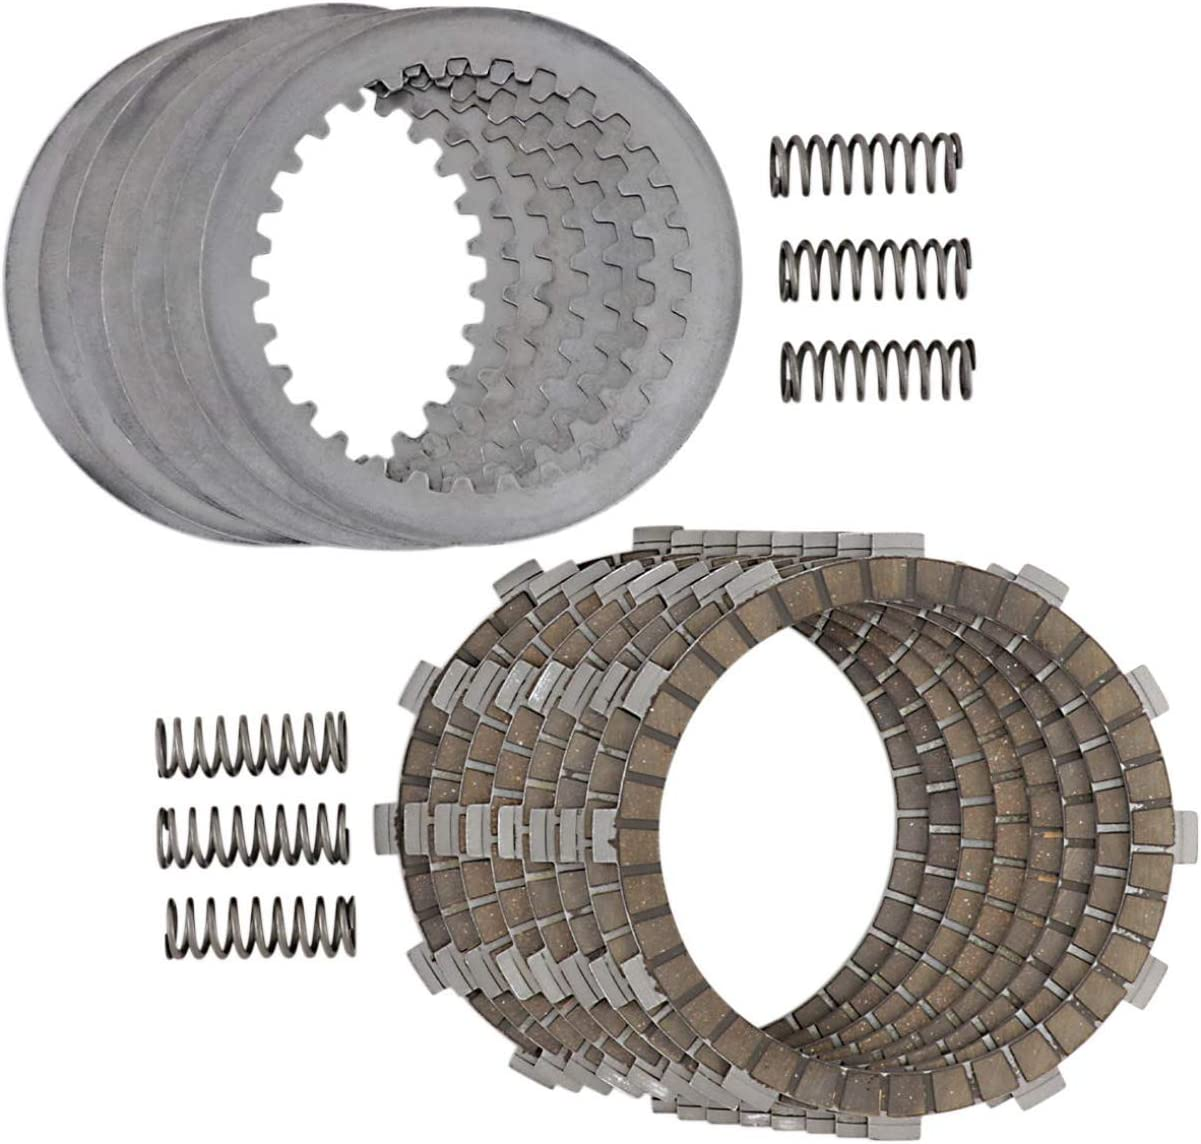 Excellent DP Brakes DPK179 Baltimore Mall CLUTCH PLATES 3 Pack